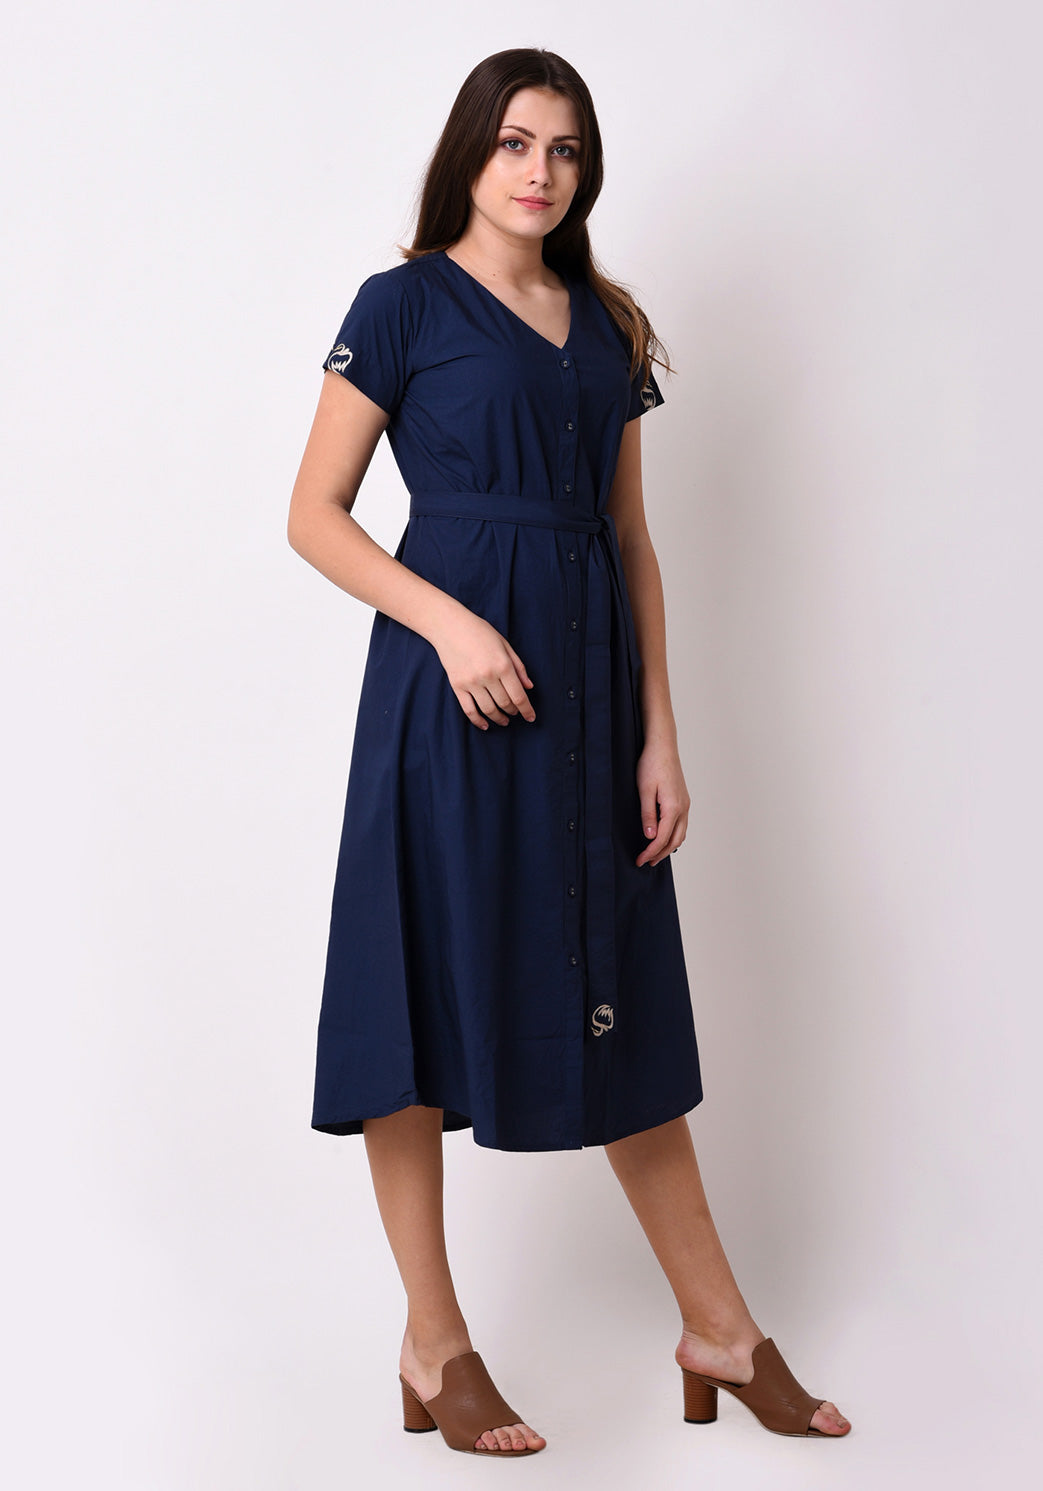 Cotton Embroidred Shirt Dress - Navy Blue